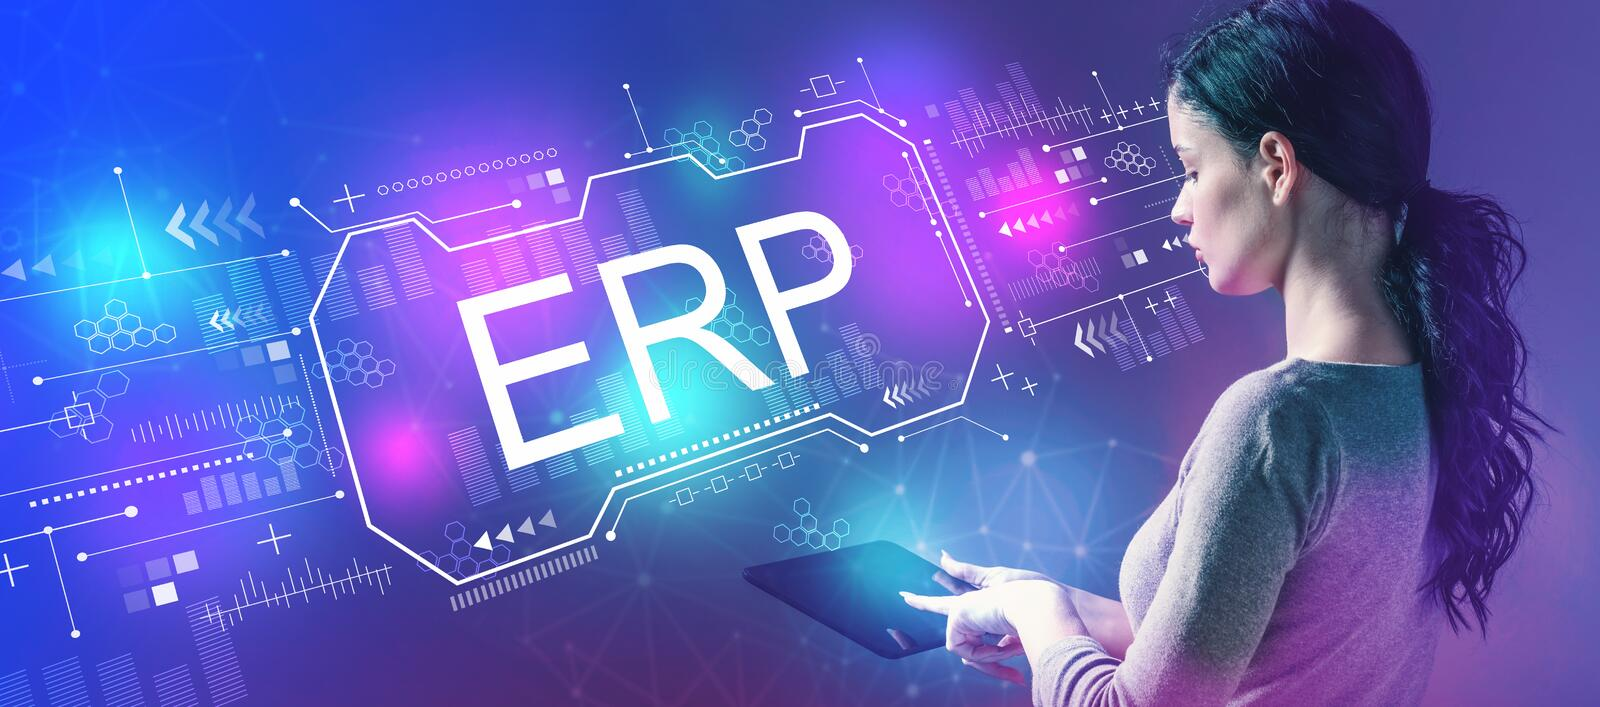 Enterprise resource planning with woman using a tablet royalty free stock photography